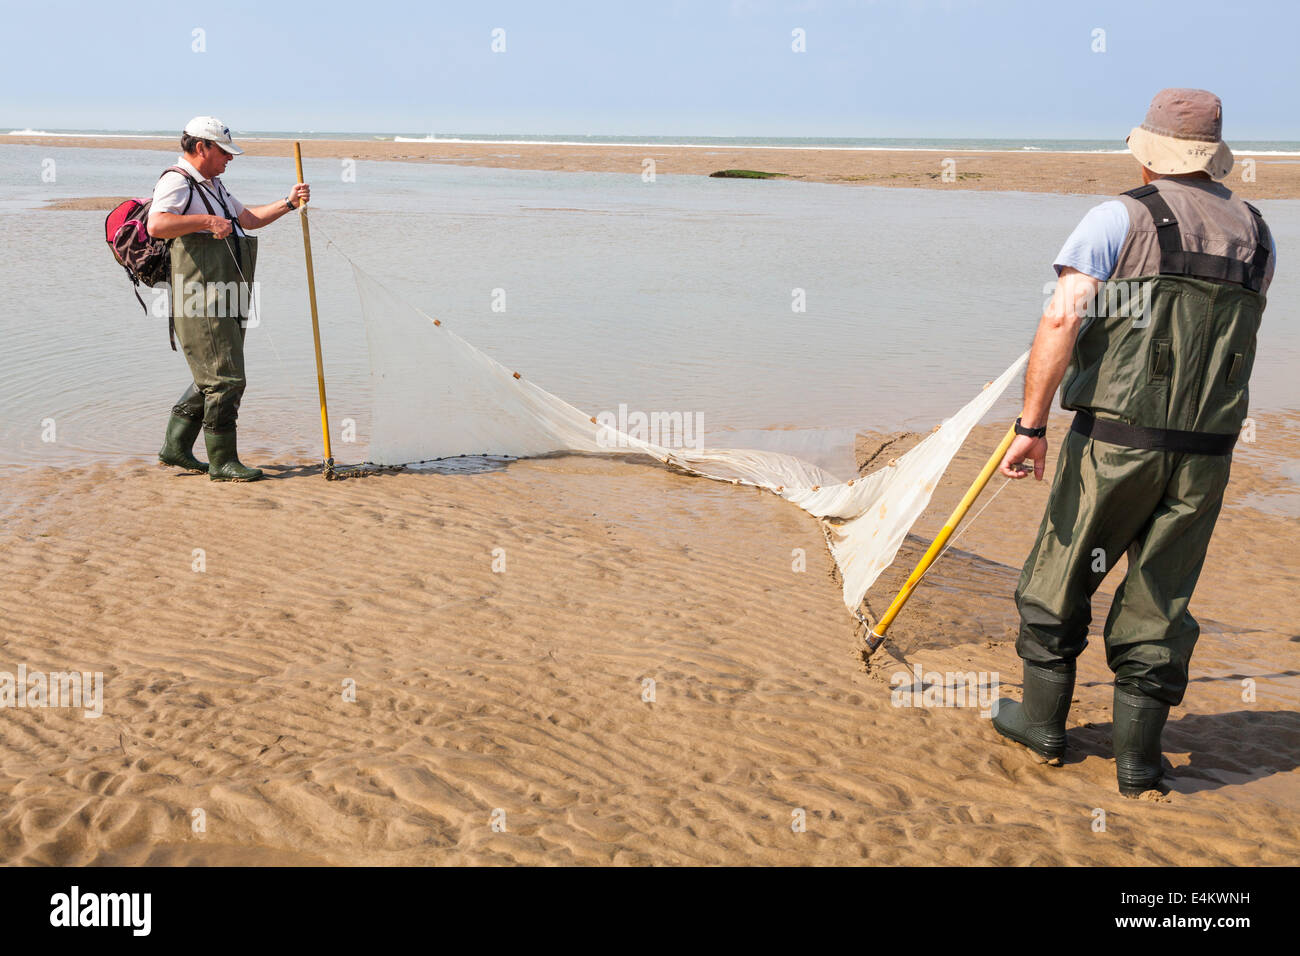 Two fishermen drag their trawl net onto the beach when trawling for fish in a pool left by the receding tide. - Stock Image